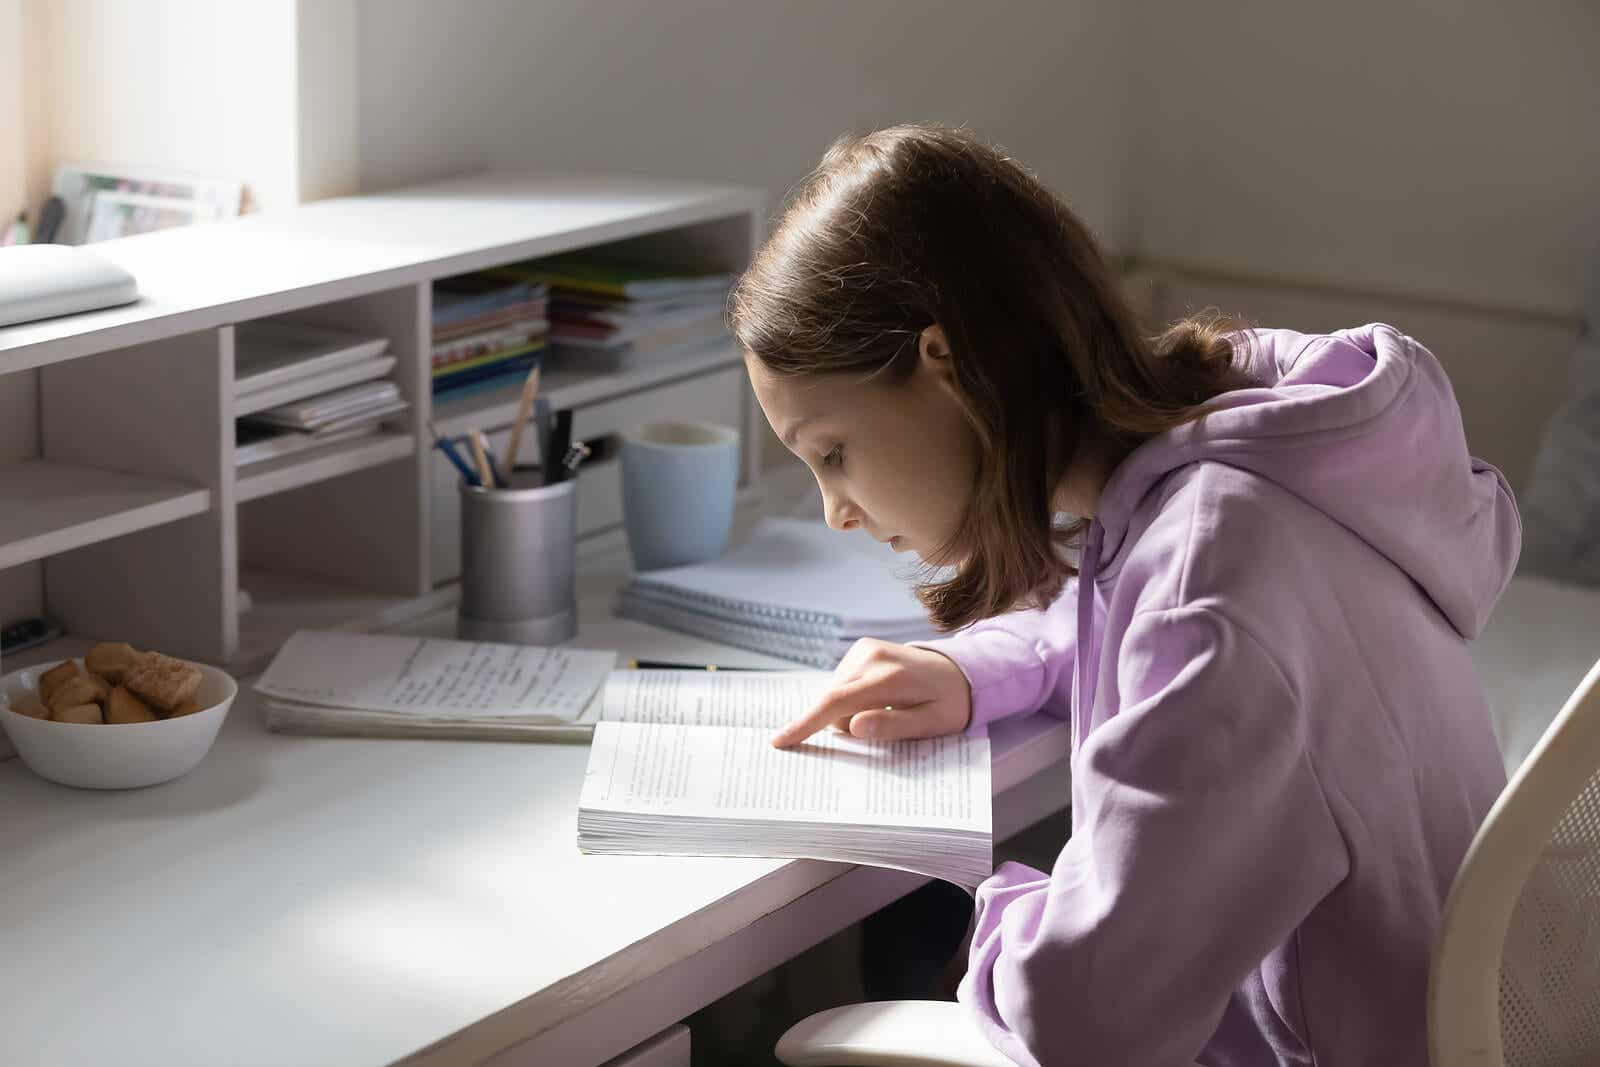 Teenage girl in her room studying because she trusts her own judgment.